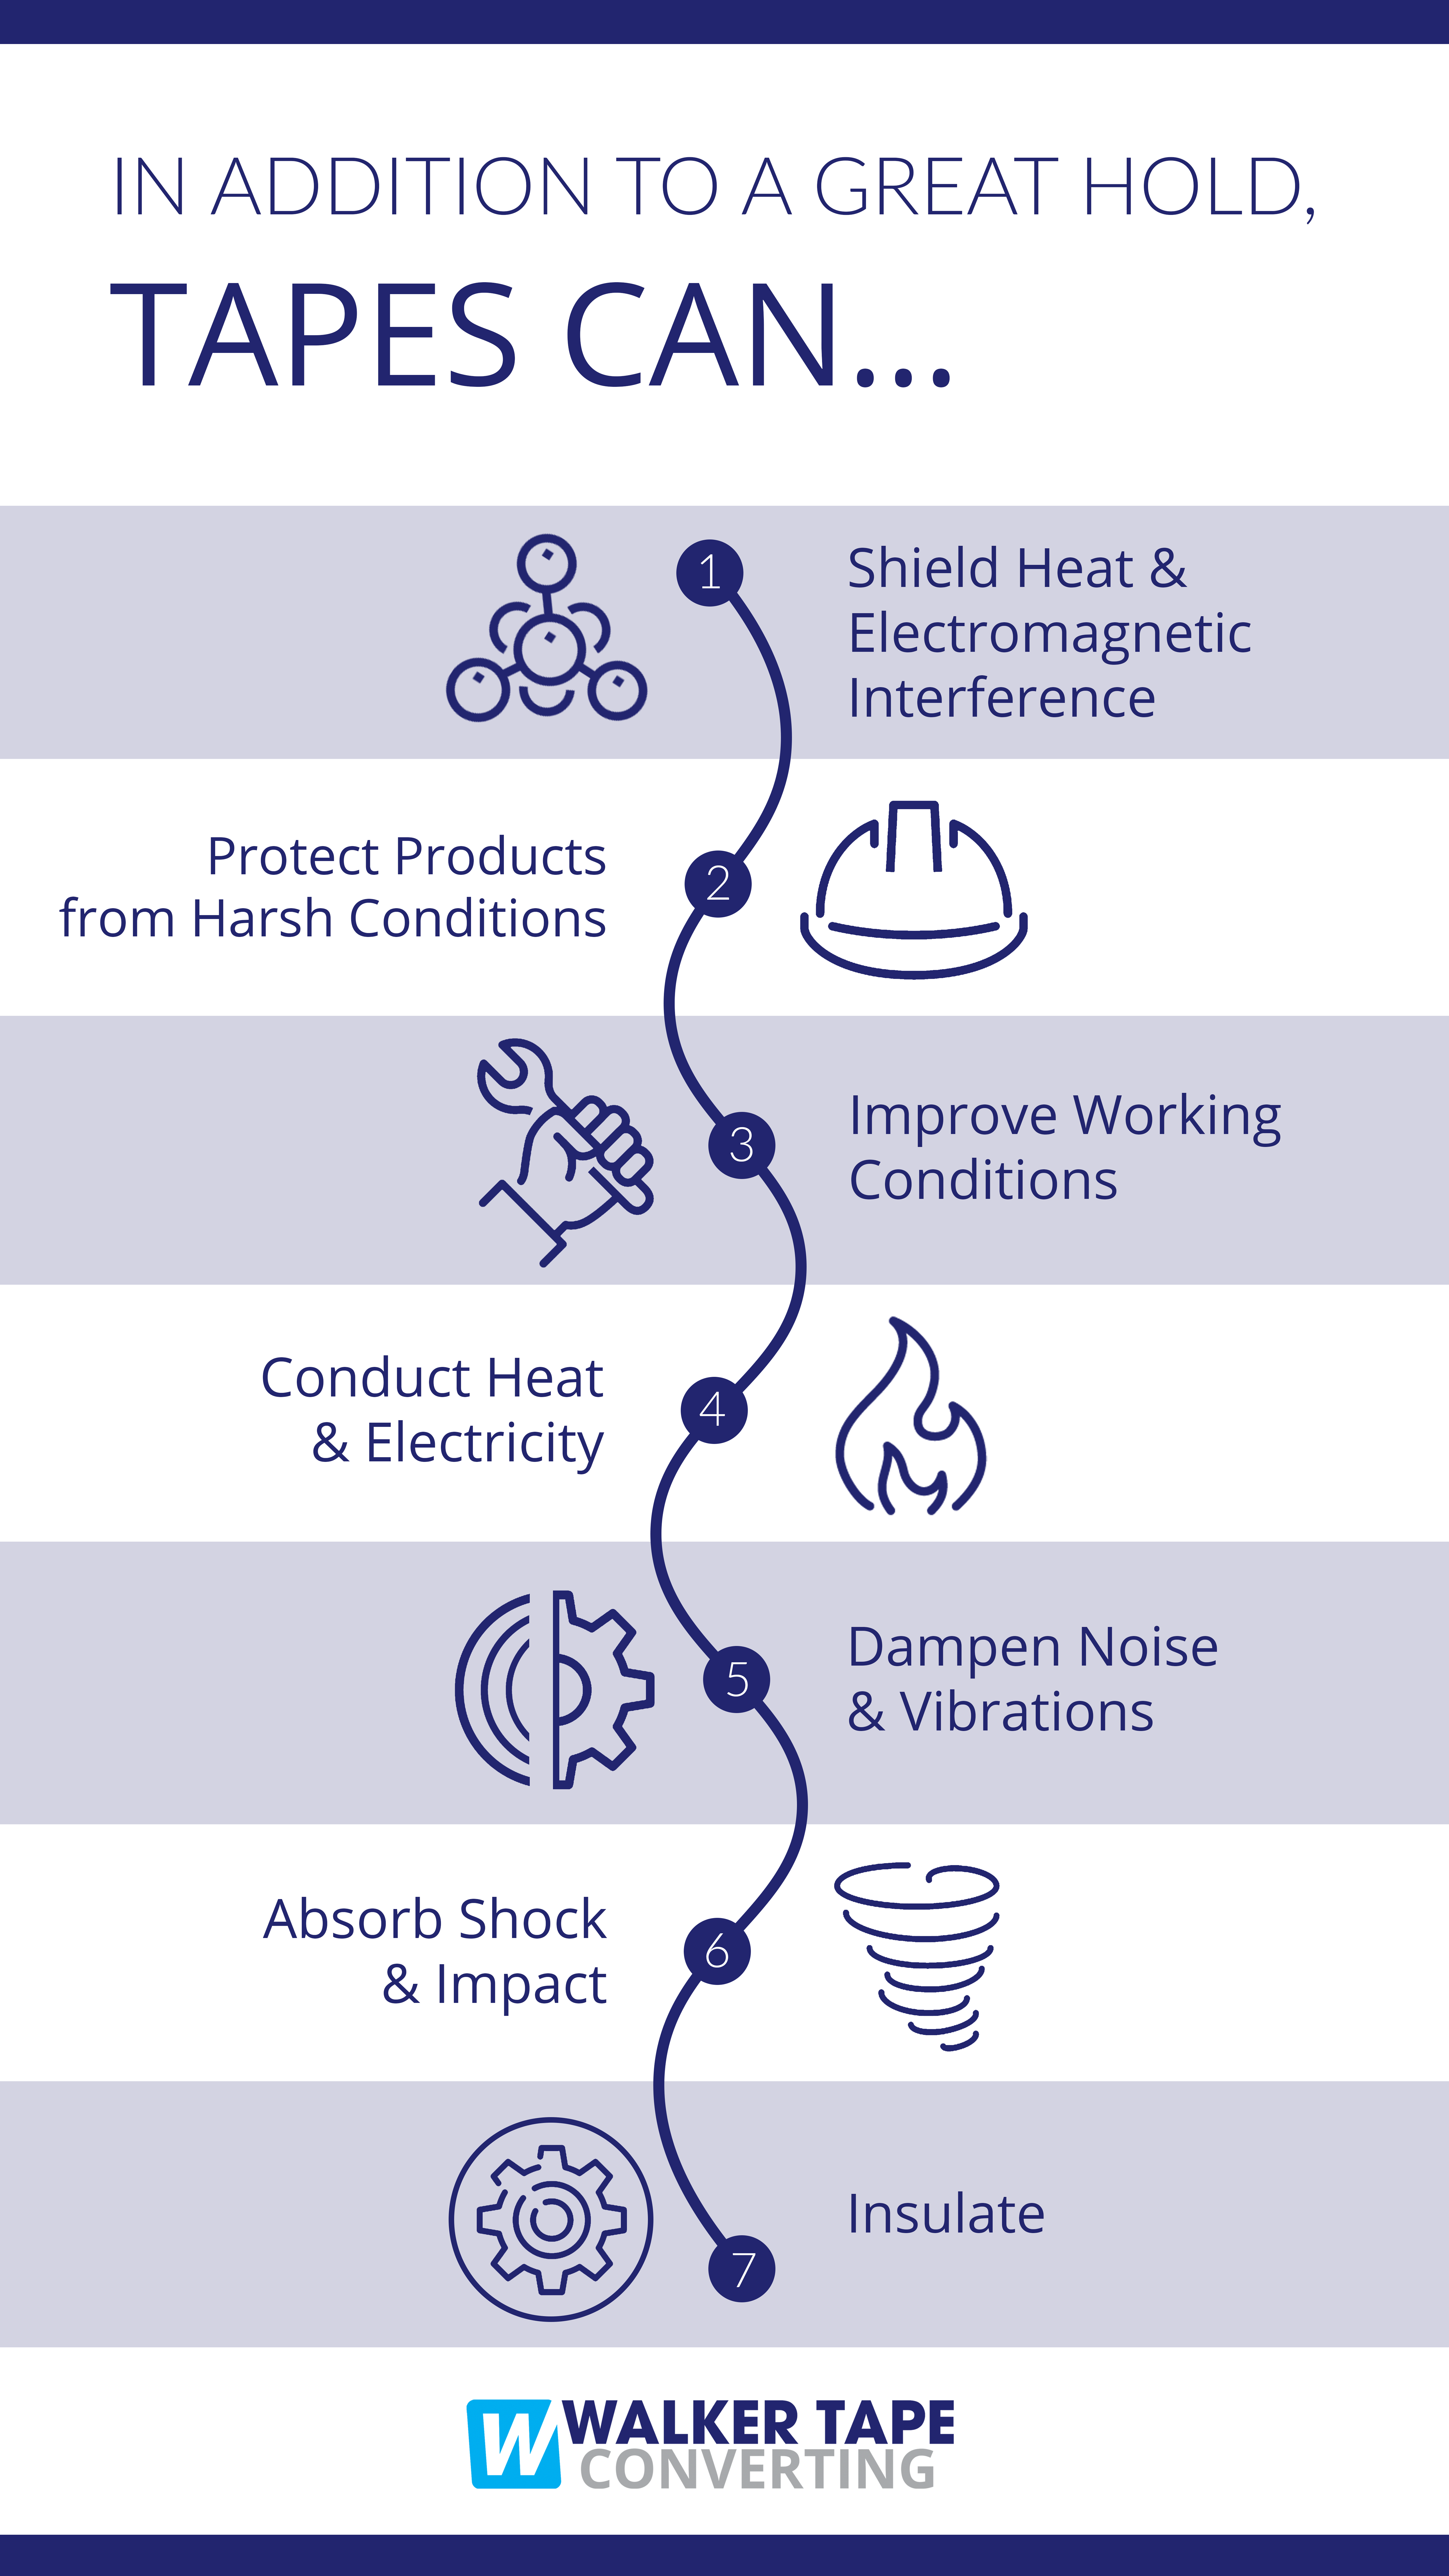 Converting Tape Production Innovation Infographic